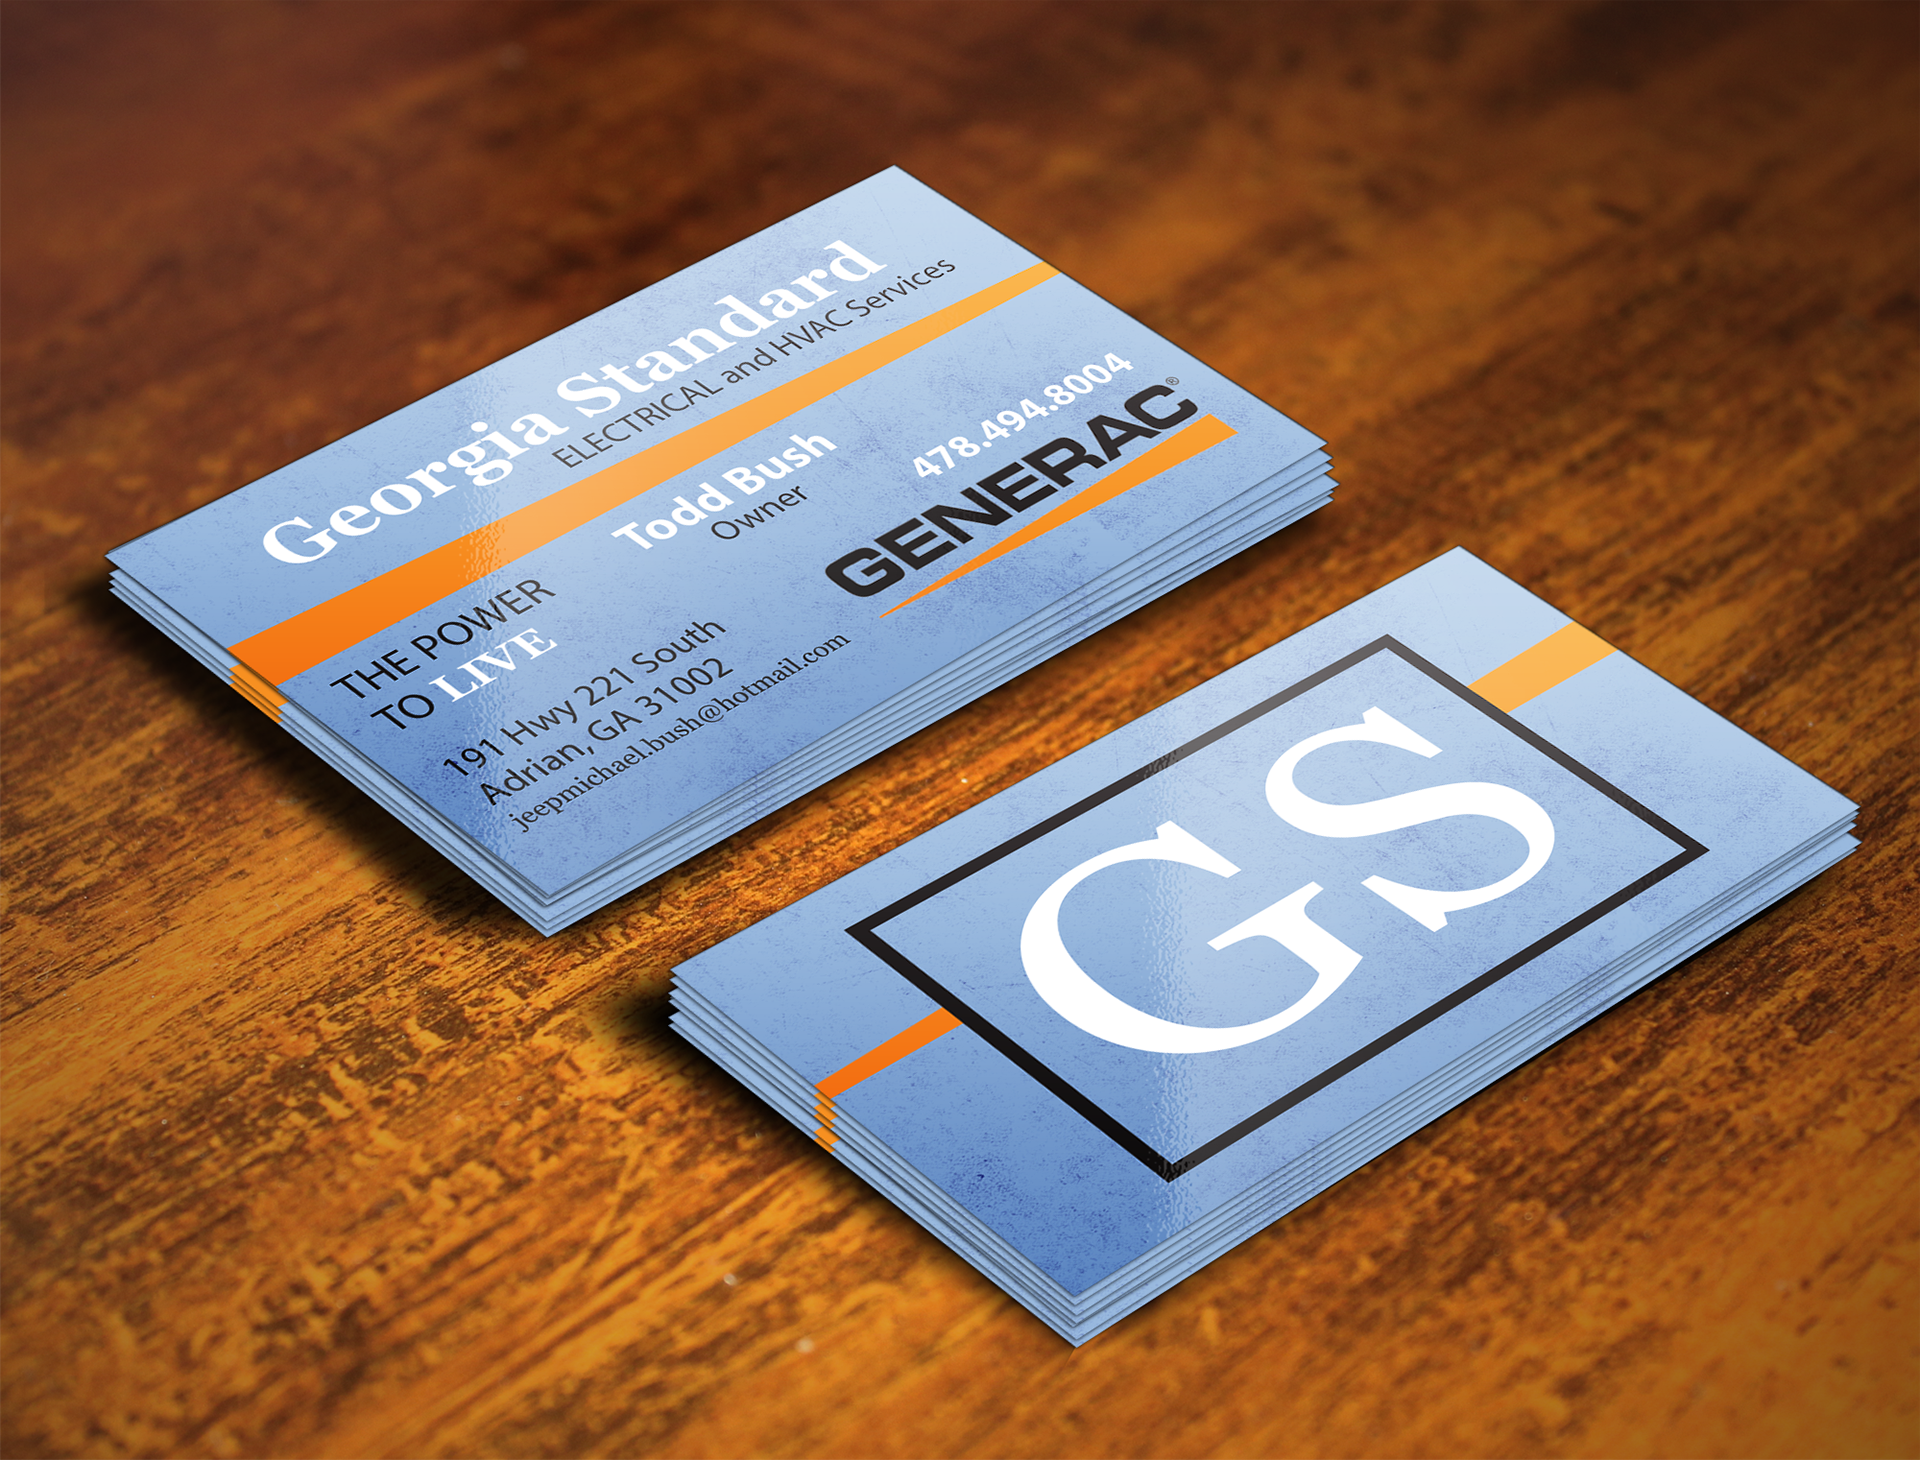 Trey Cox Graphics - Business Card for Georgia Standard